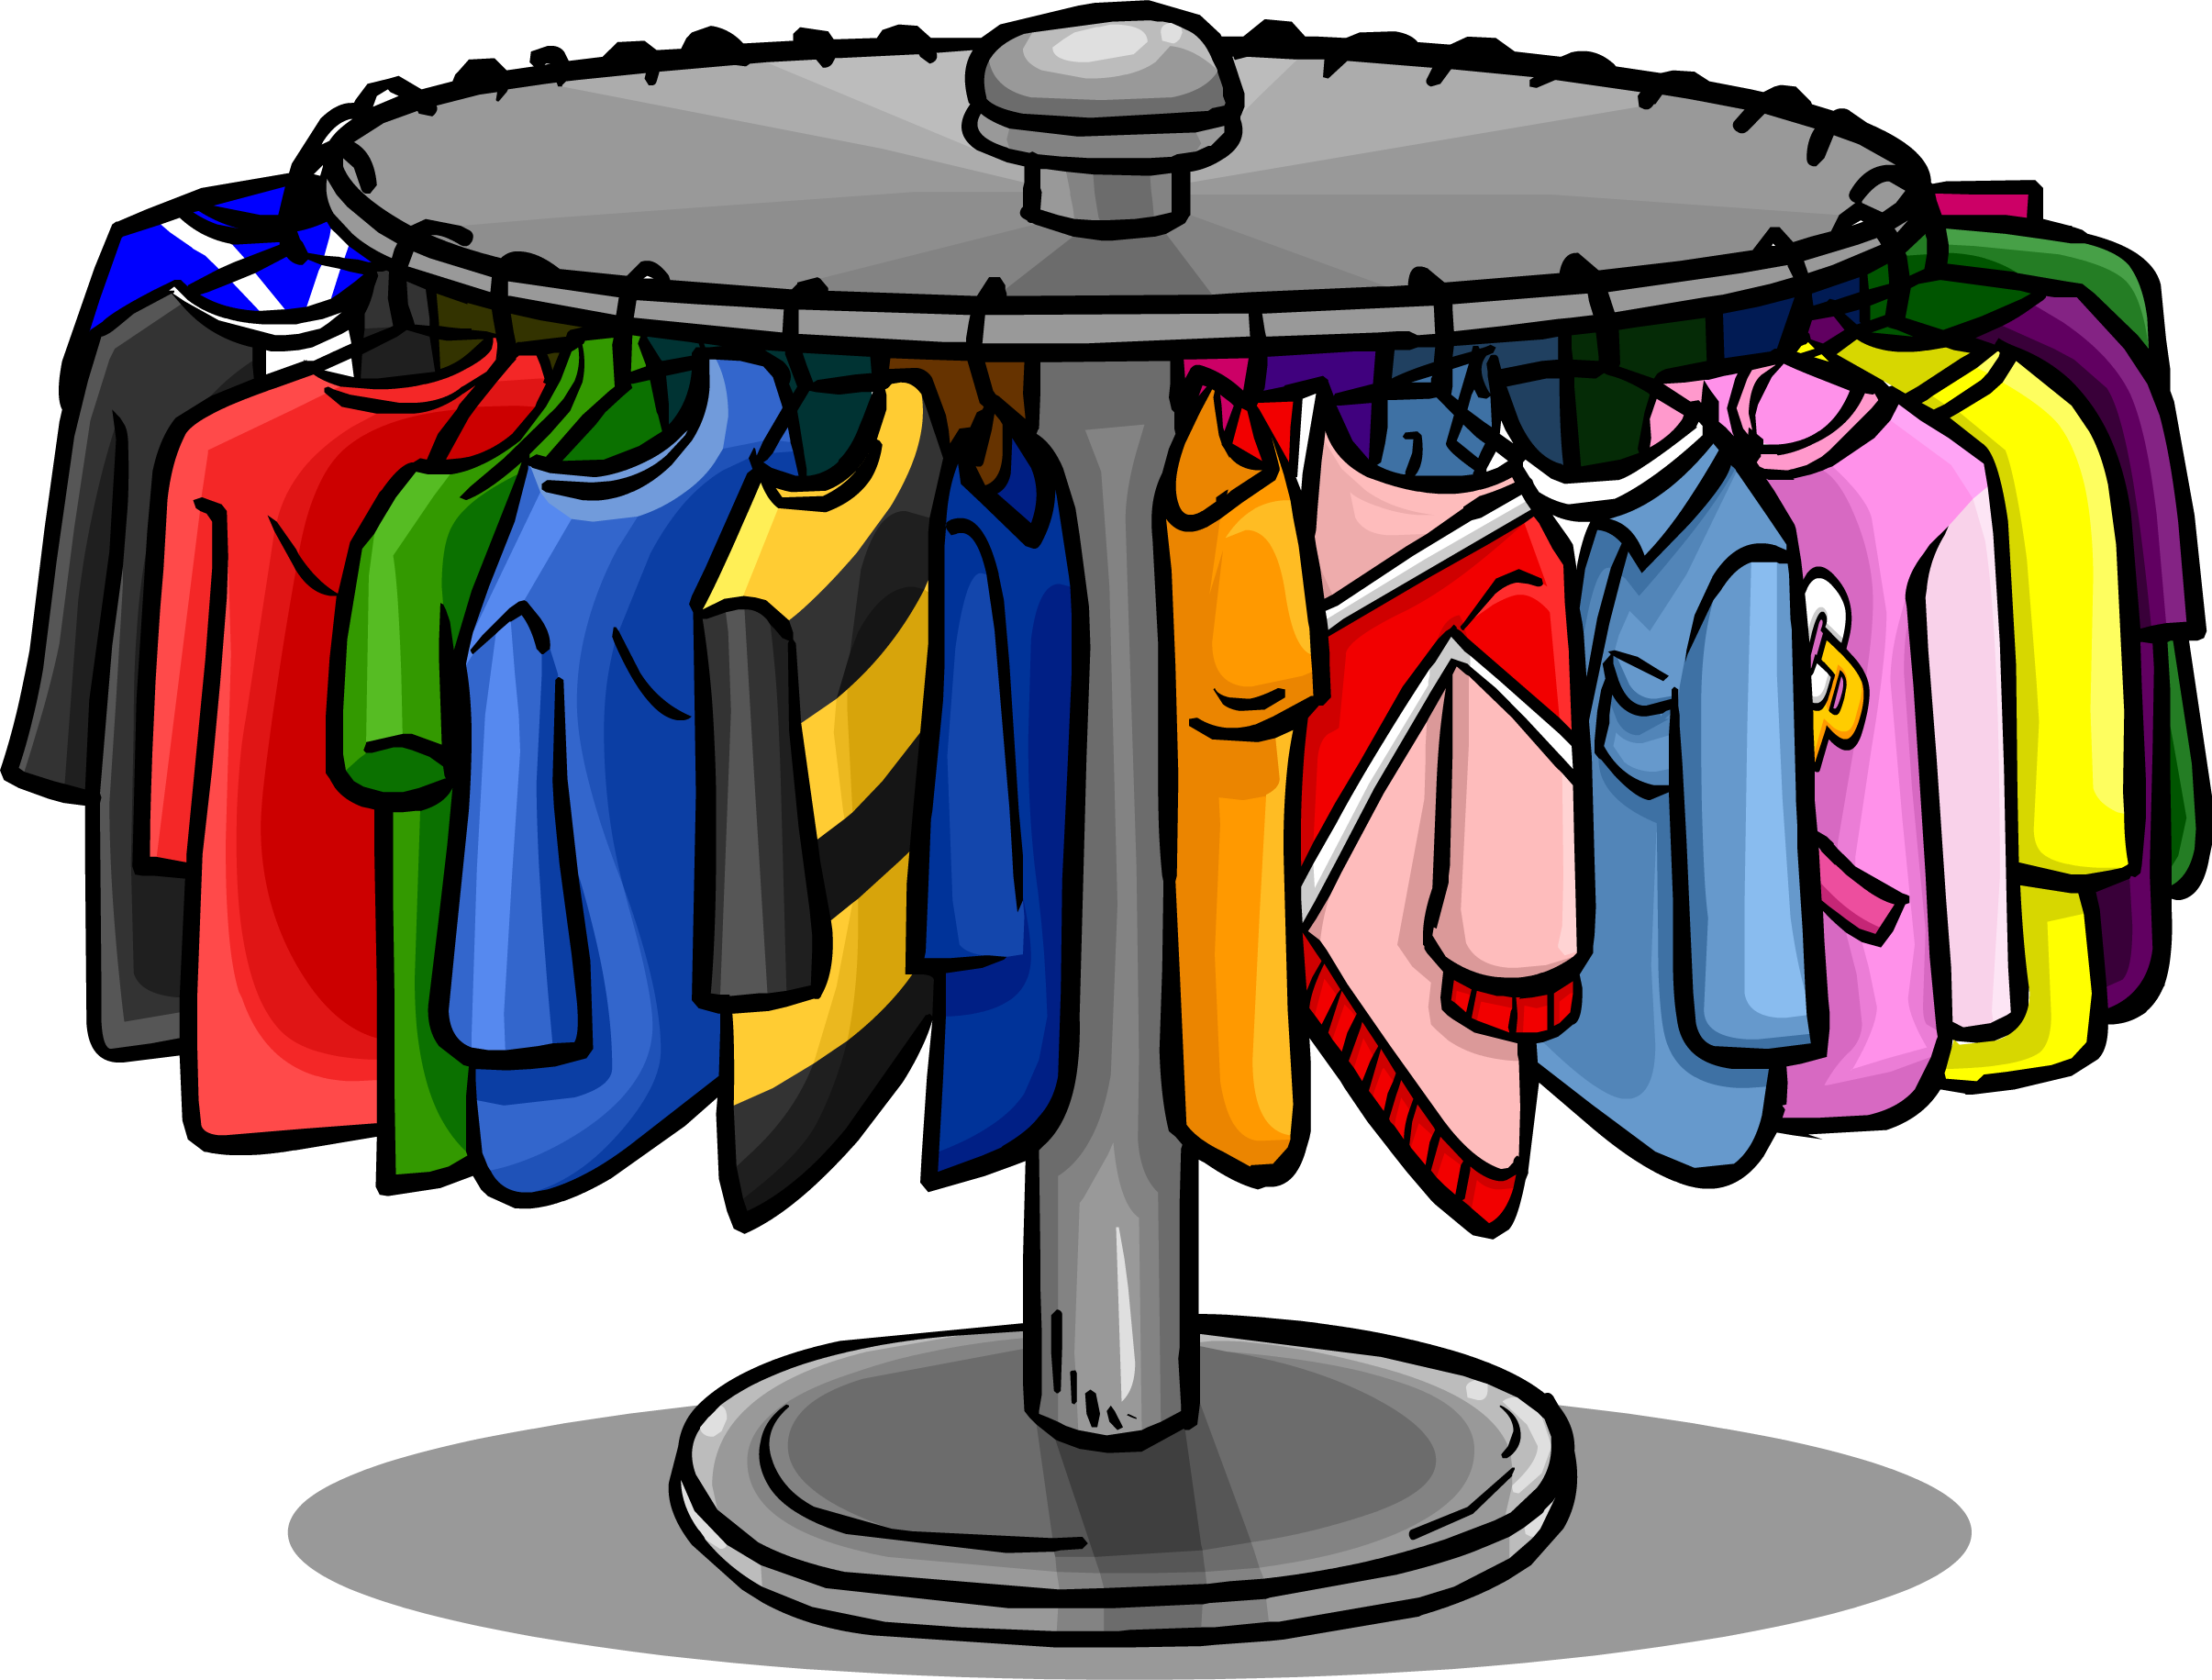 Clothes clipart png. Collection of transparent